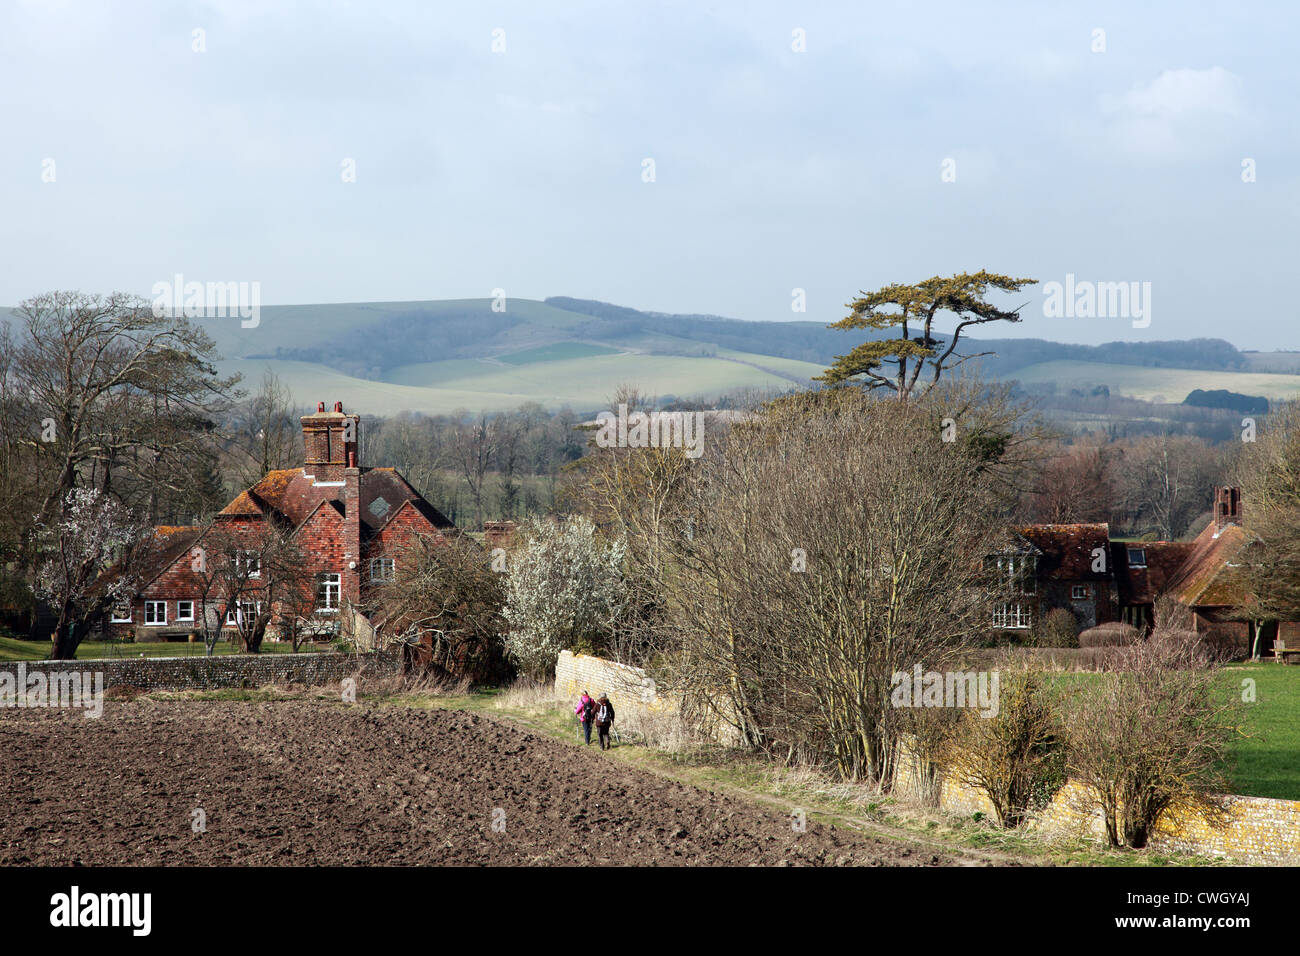 Country houses near Firle Place, East Sussex, England - Stock Image